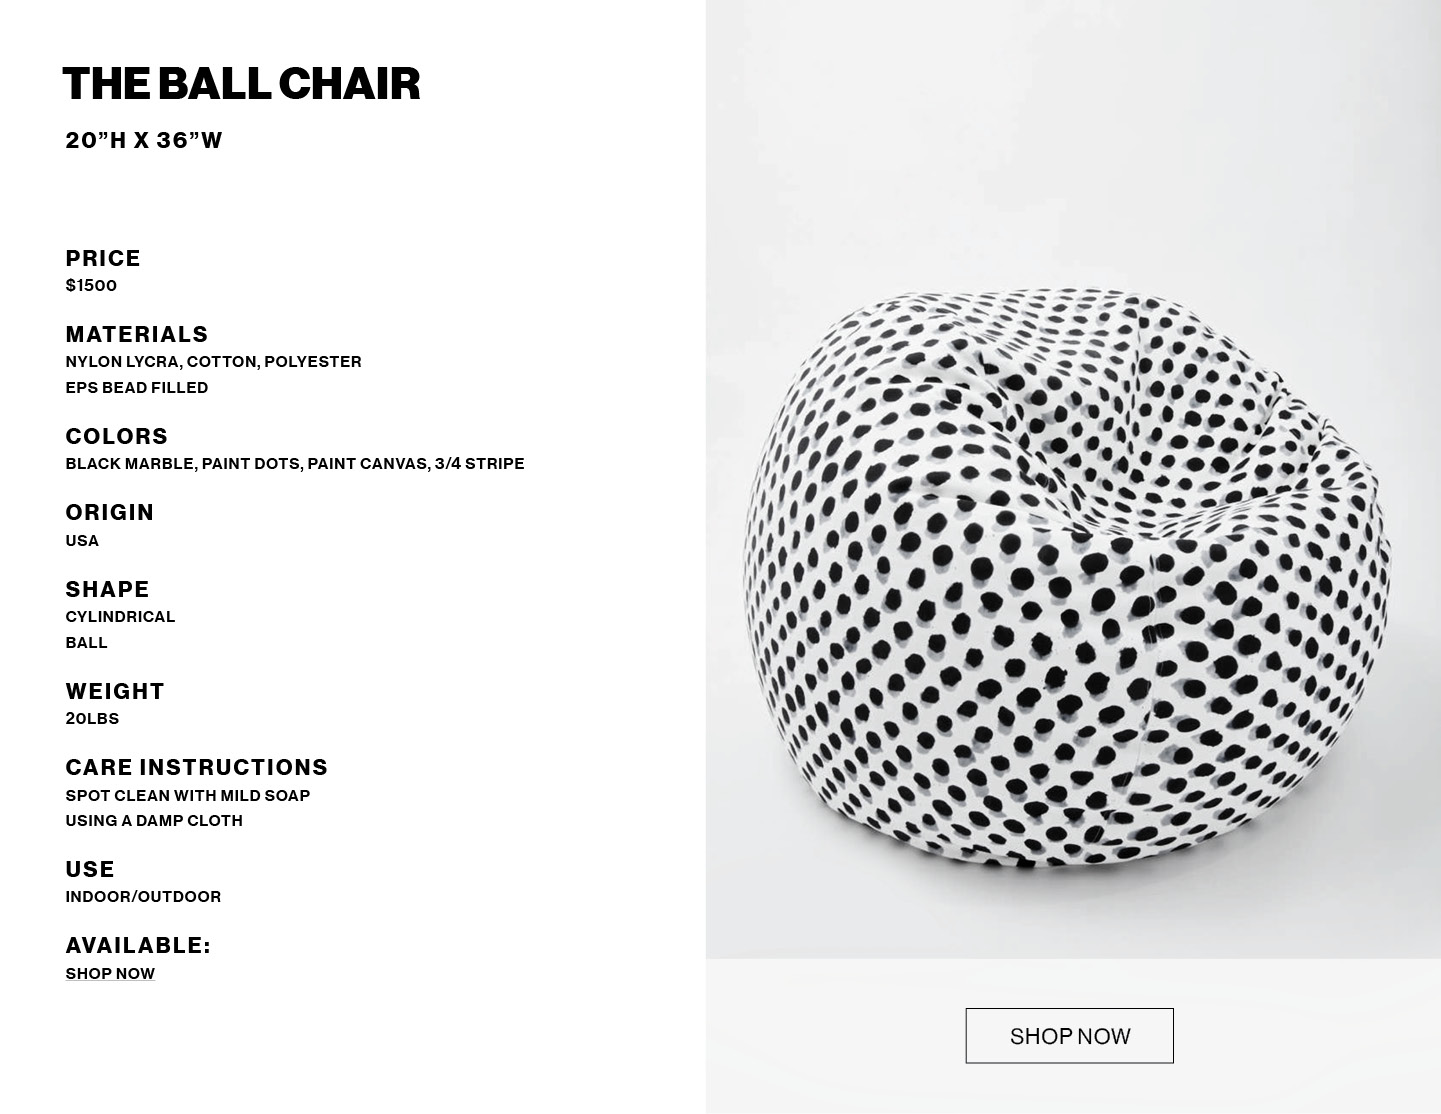 The Ball Chair product info